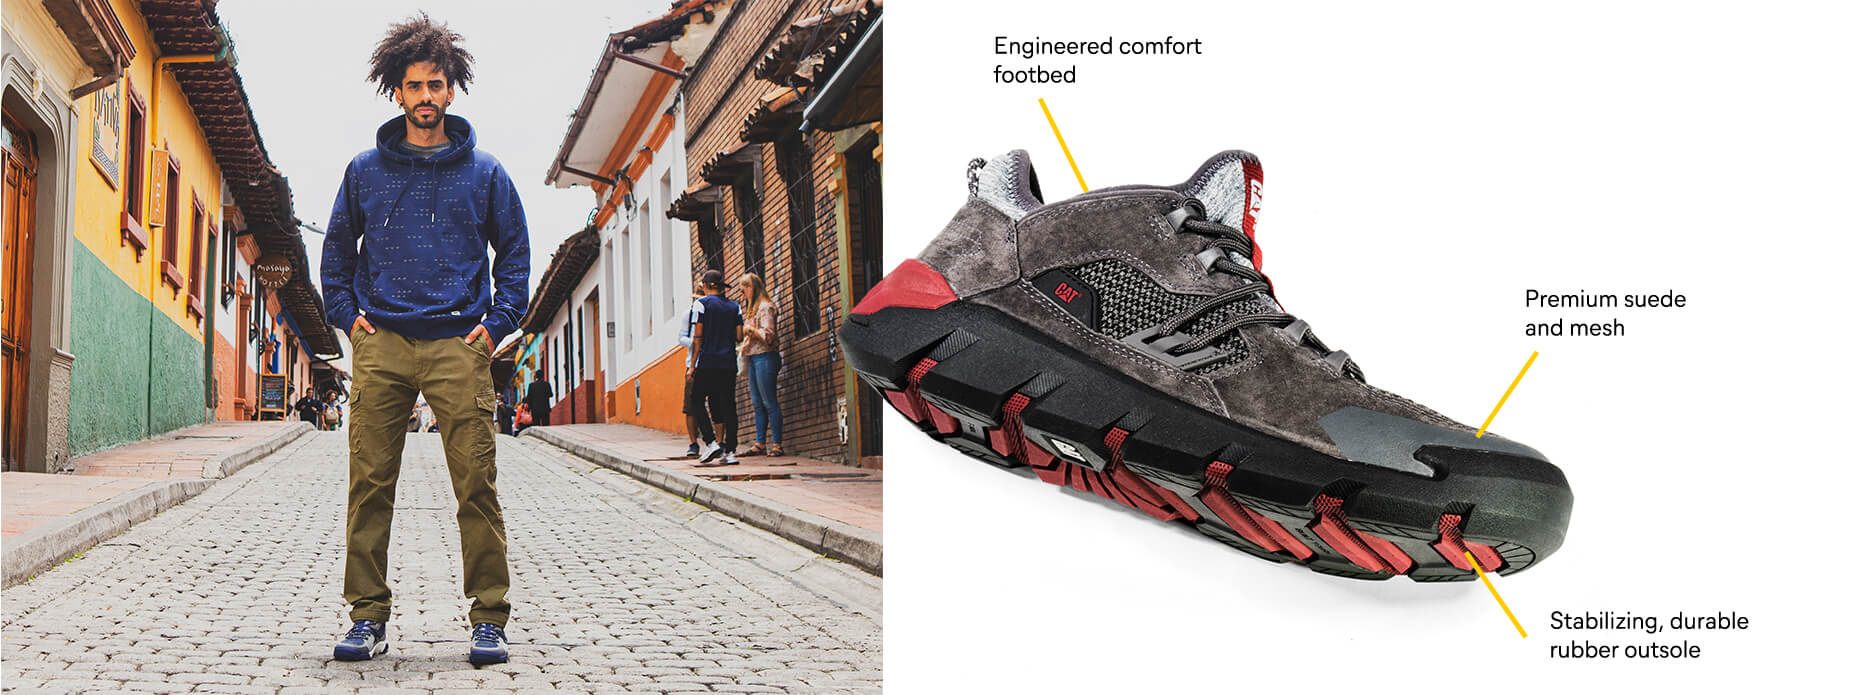 Shoe with tech callouts: Engineered comfort footbed. Premium suede and mesh. Stabilizing, durable rubber outsole.